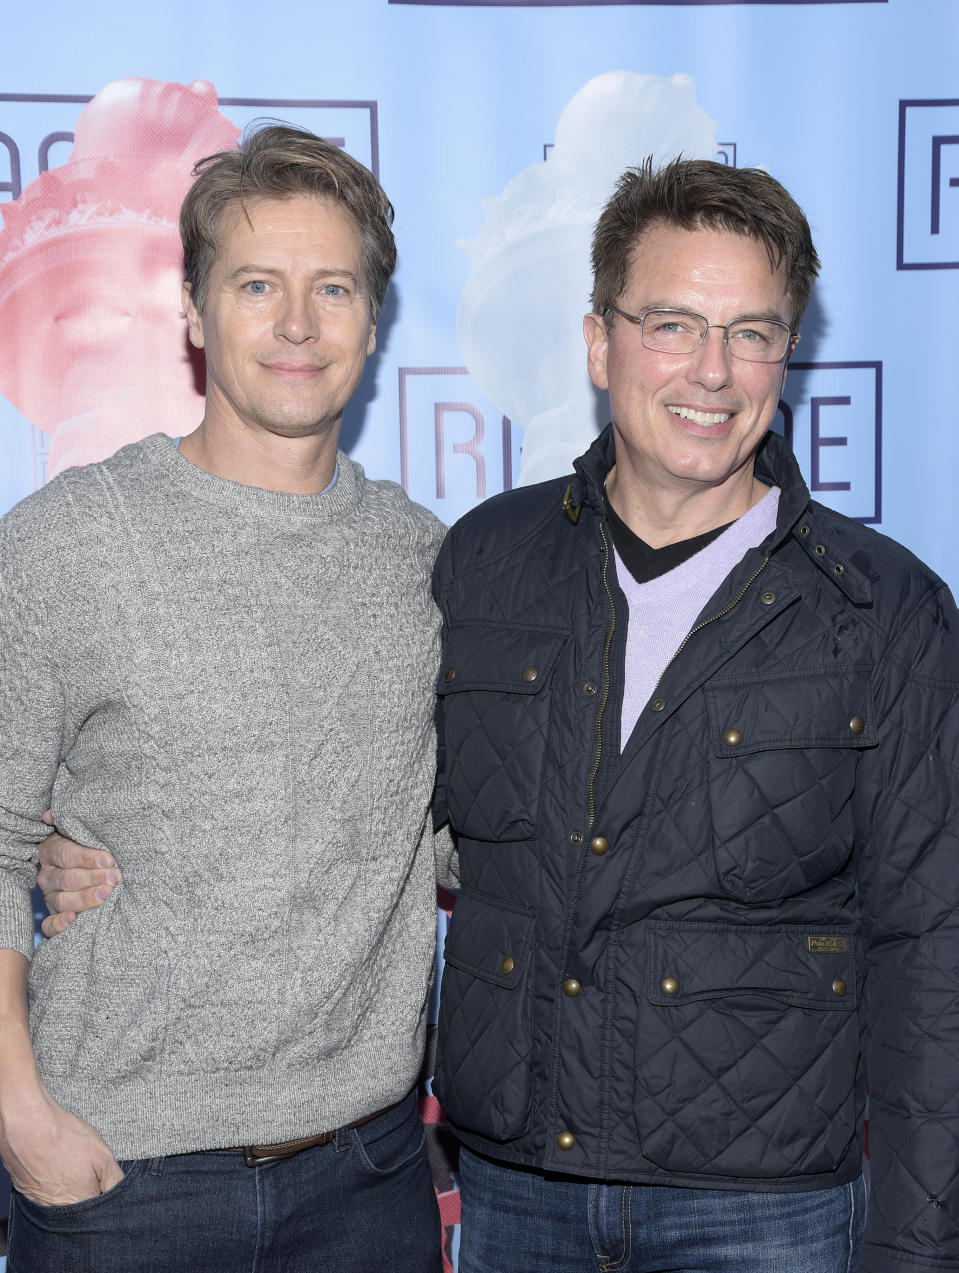 """PASADENA, CALIFORNIA - FEBRUARY 10: Scott Gill and John Barrowman attend the opening night performance of """"Ragtime"""" at Pasadena Playhouse on February 10, 2019 in Pasadena, California. (Photo by Michael Tullberg/Getty Images)"""